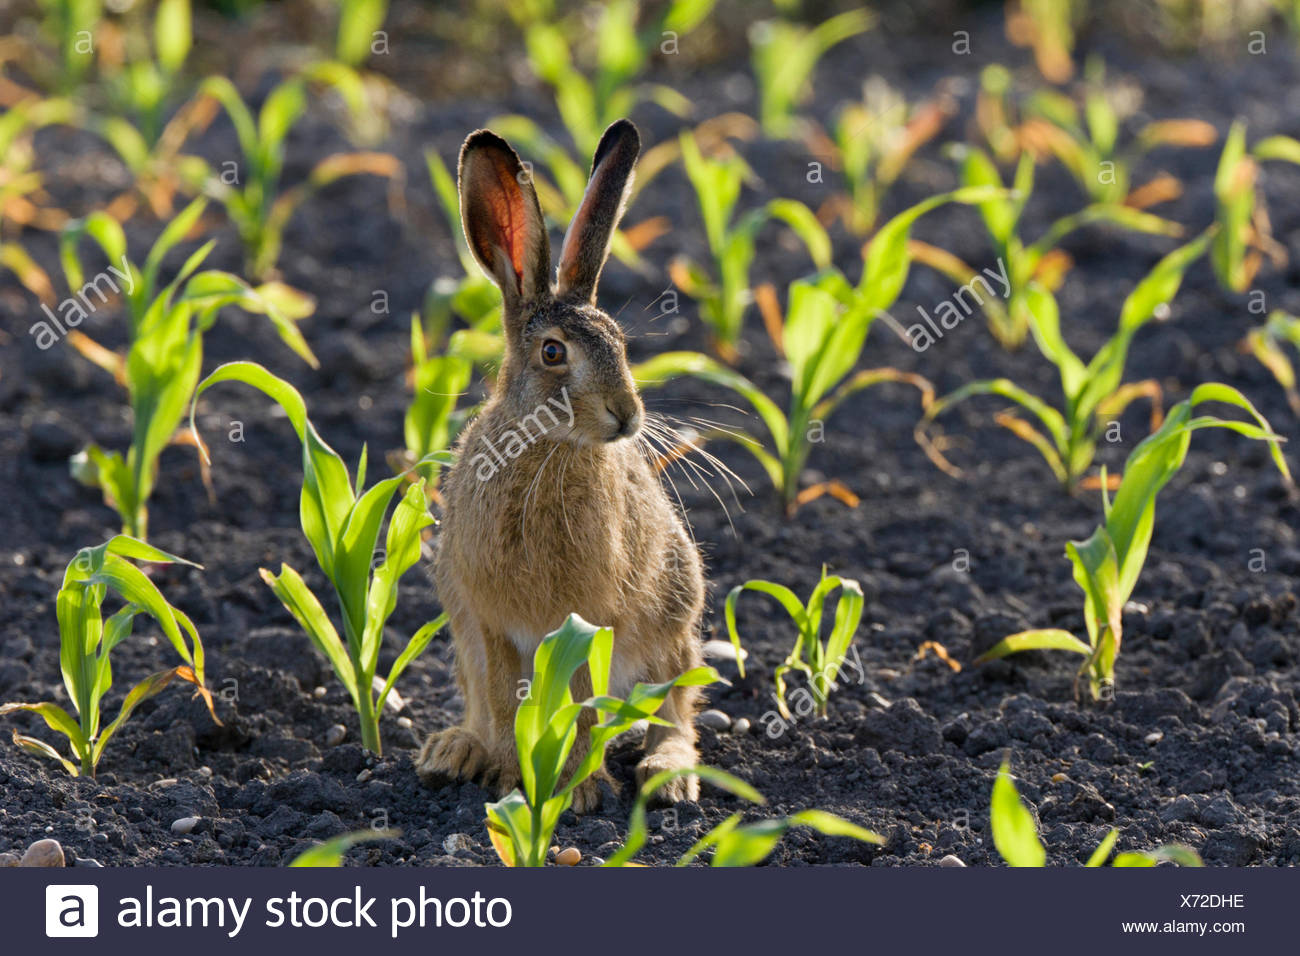 European hare, Brown hare (Lepus europaeus), on a field in backlight, Austria, Burgenland, Seewinkel - Stock Image